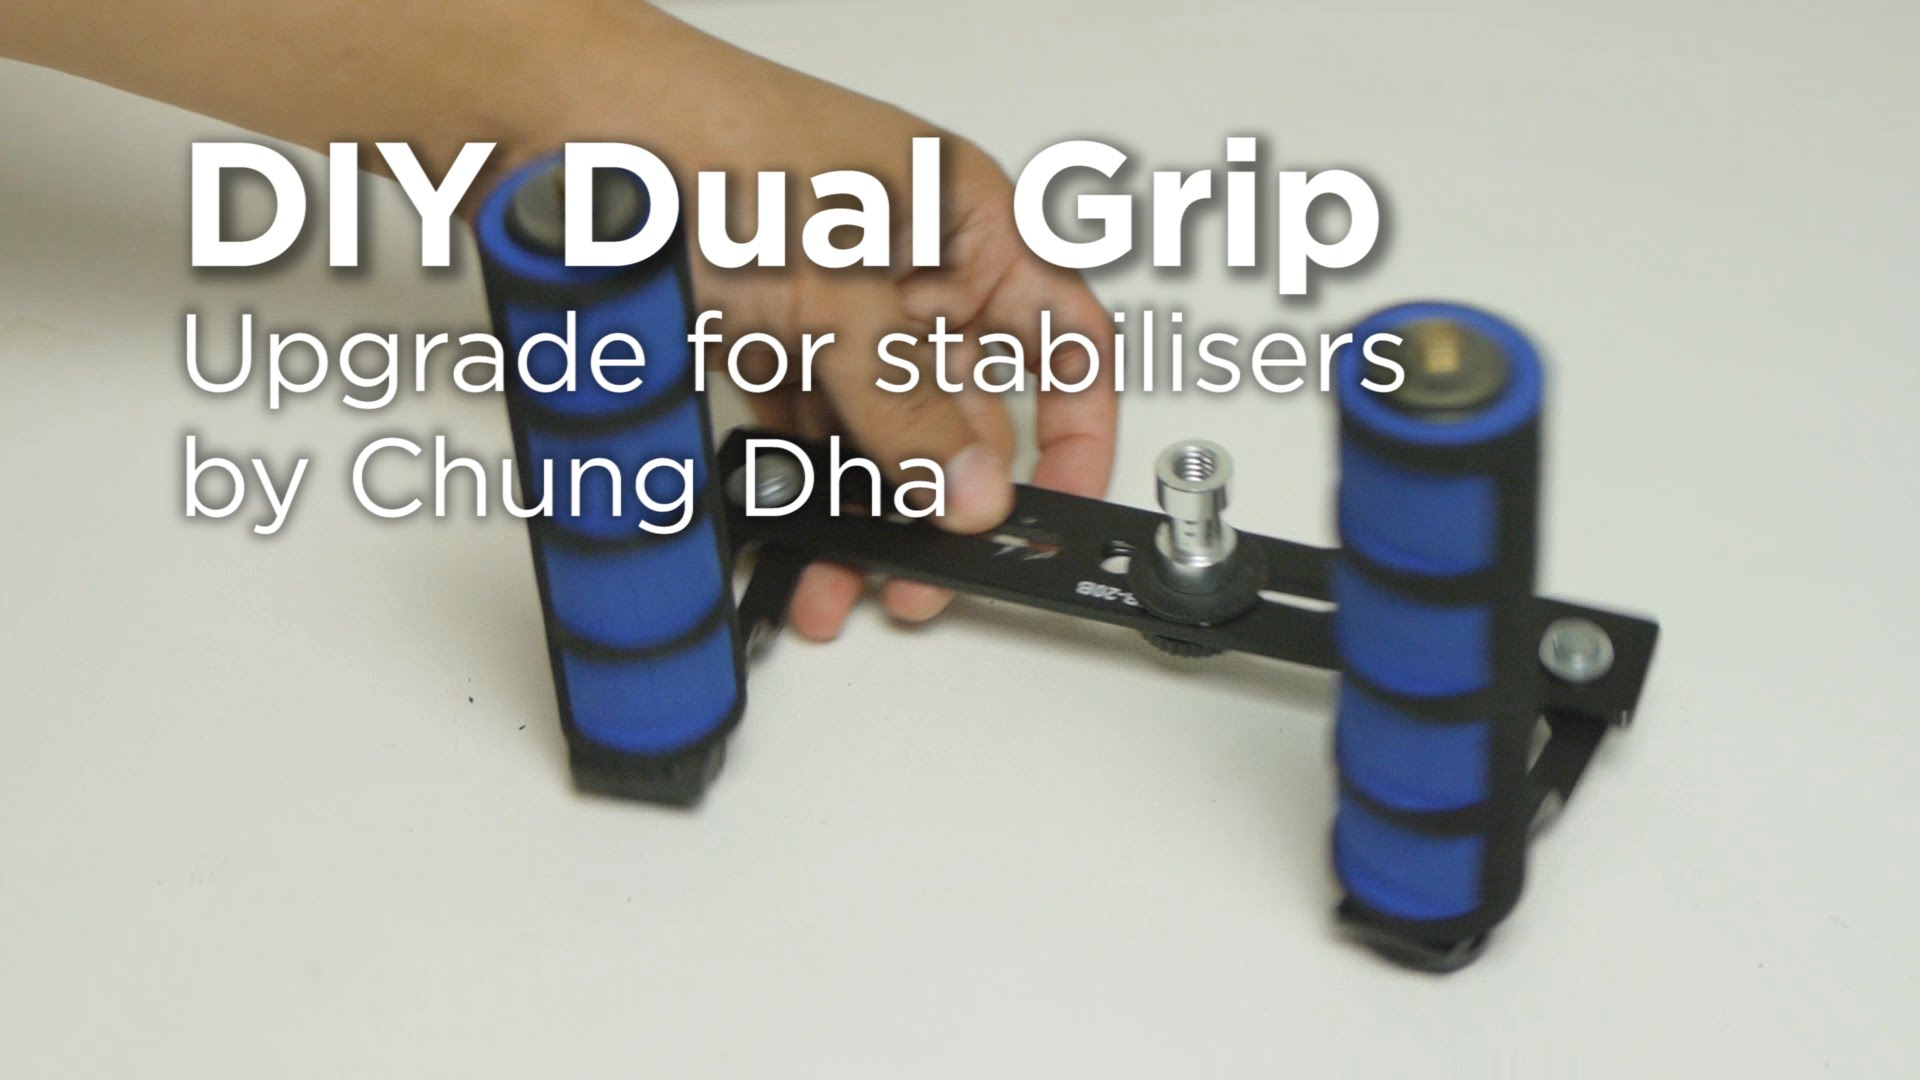 DIY Dual handle grip for stabilisers